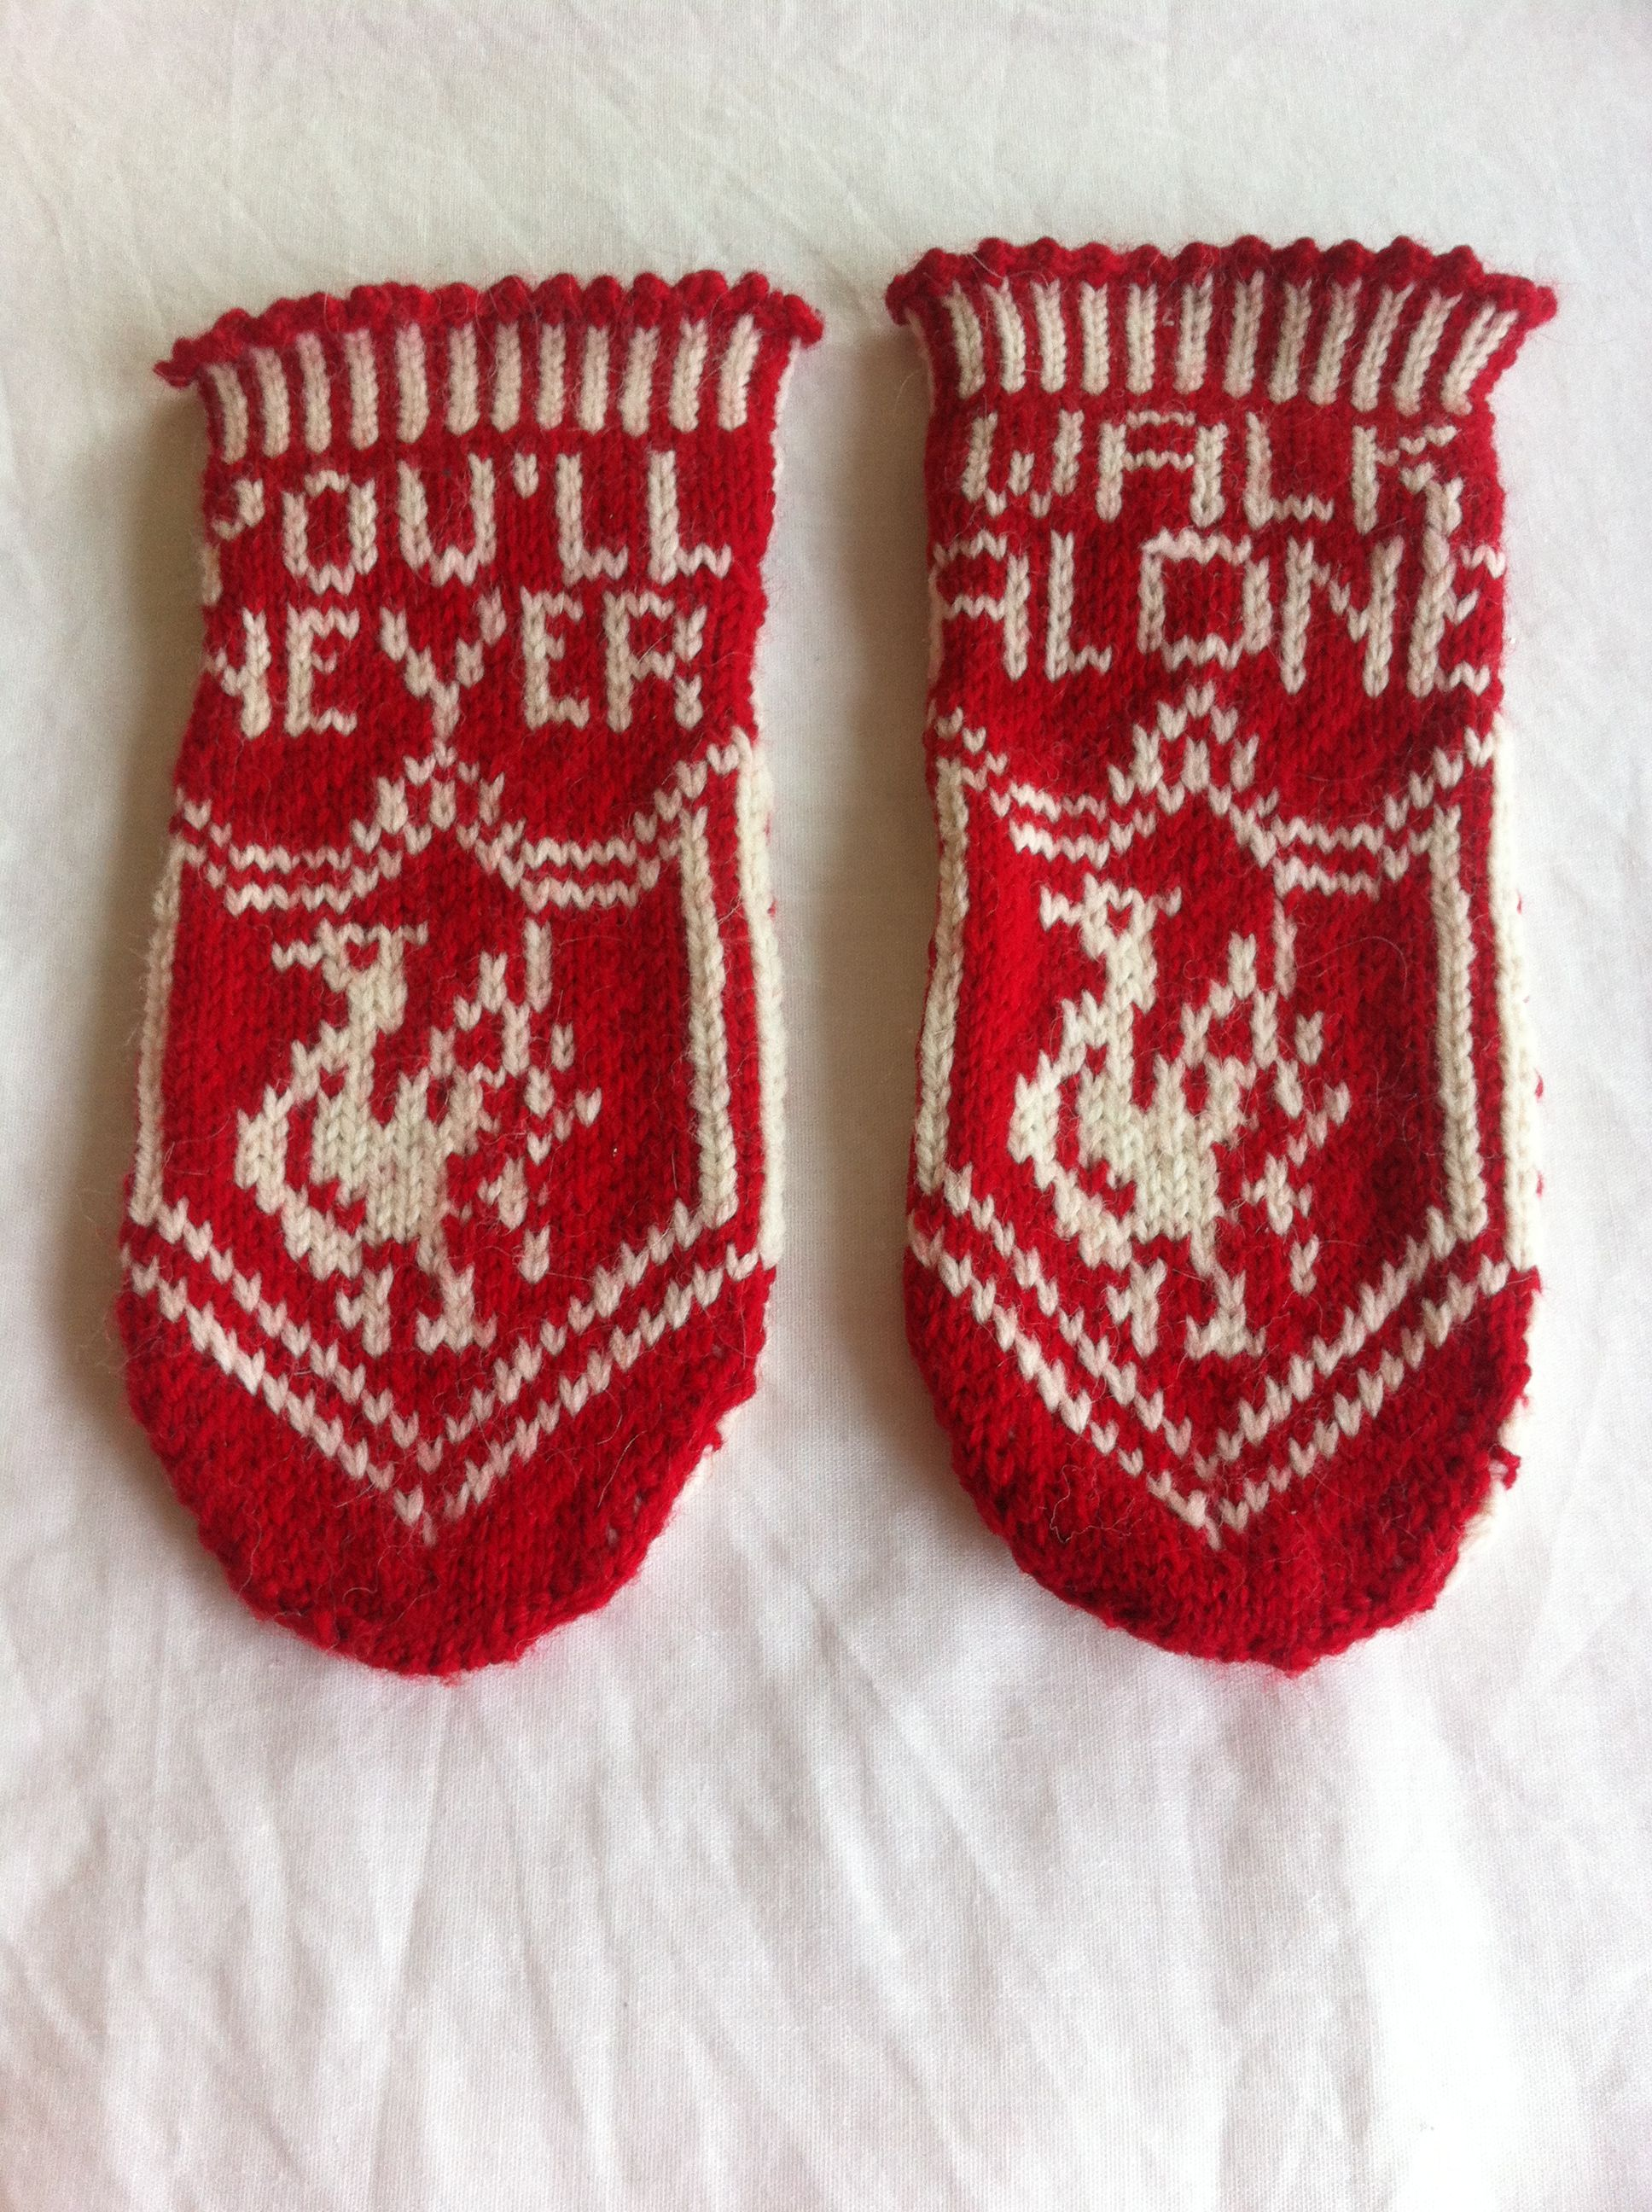 Liverpool-sockslippers. Turned a pattern for mittens into these sockslippers.